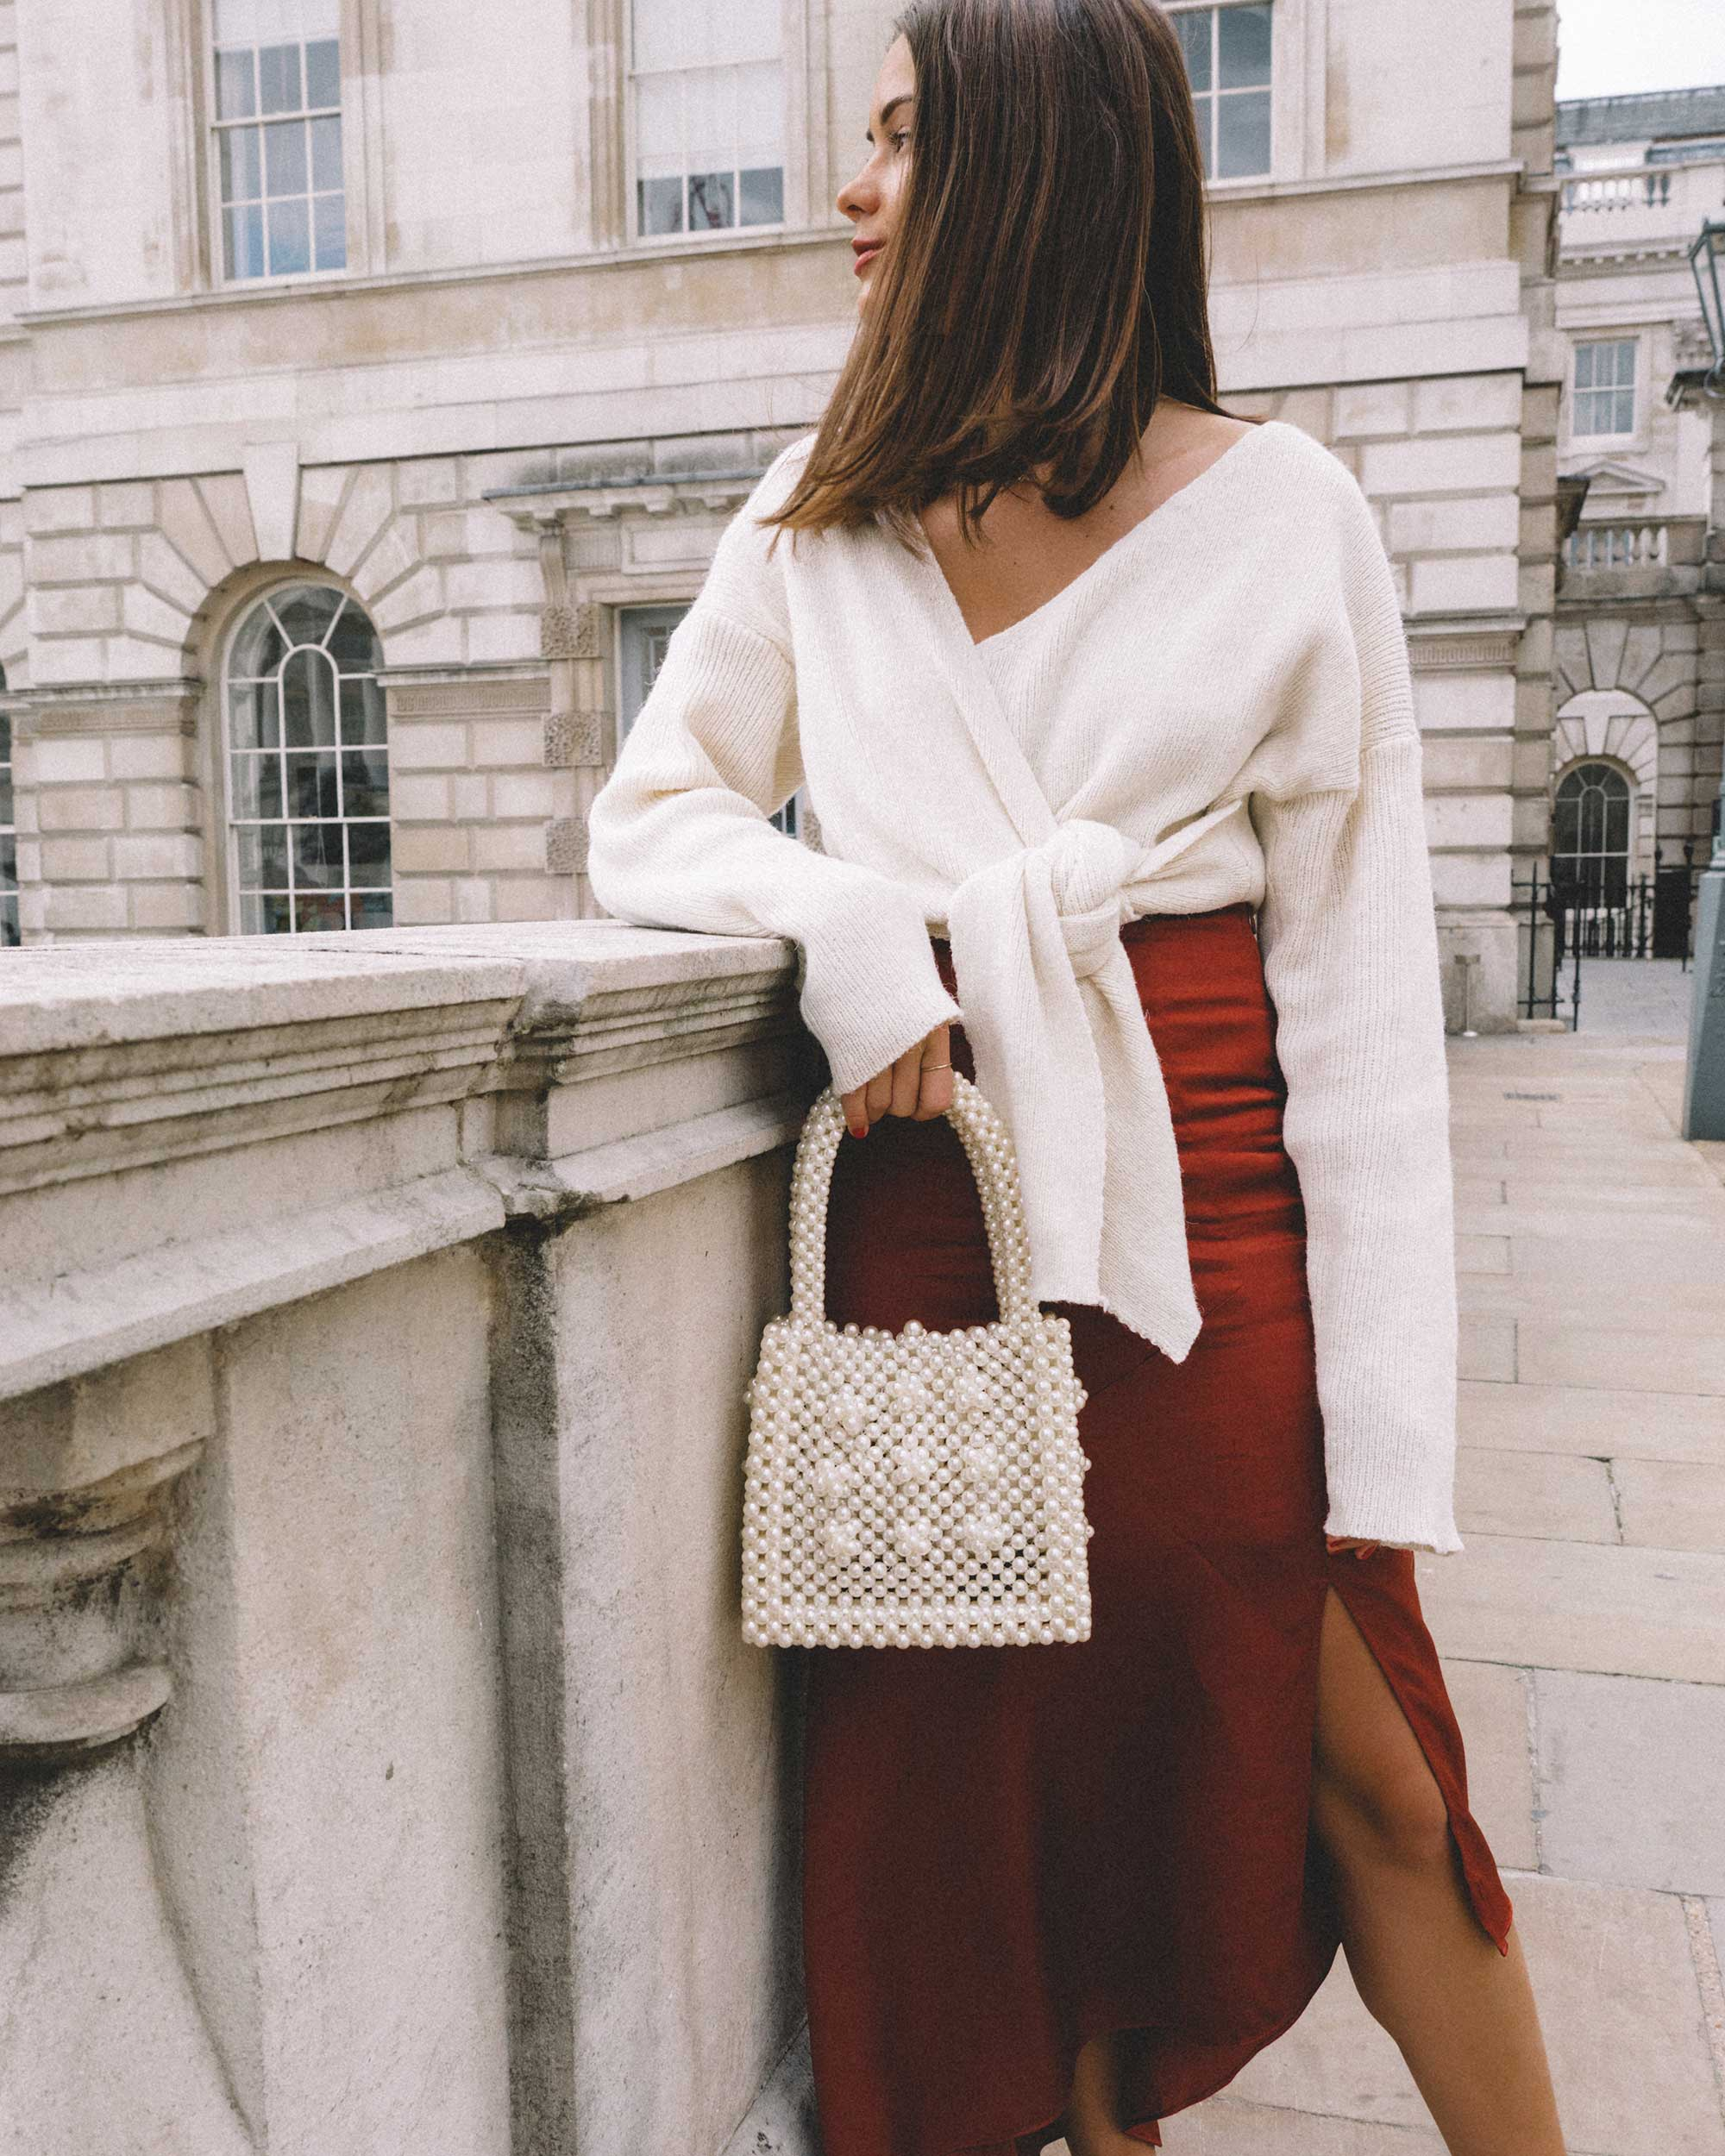 & Other Stories Asymmetric Slit Midi Skirt, Faux Pearl Handbag, Tied knot front Sweater london streetstyle outfit3.jpg